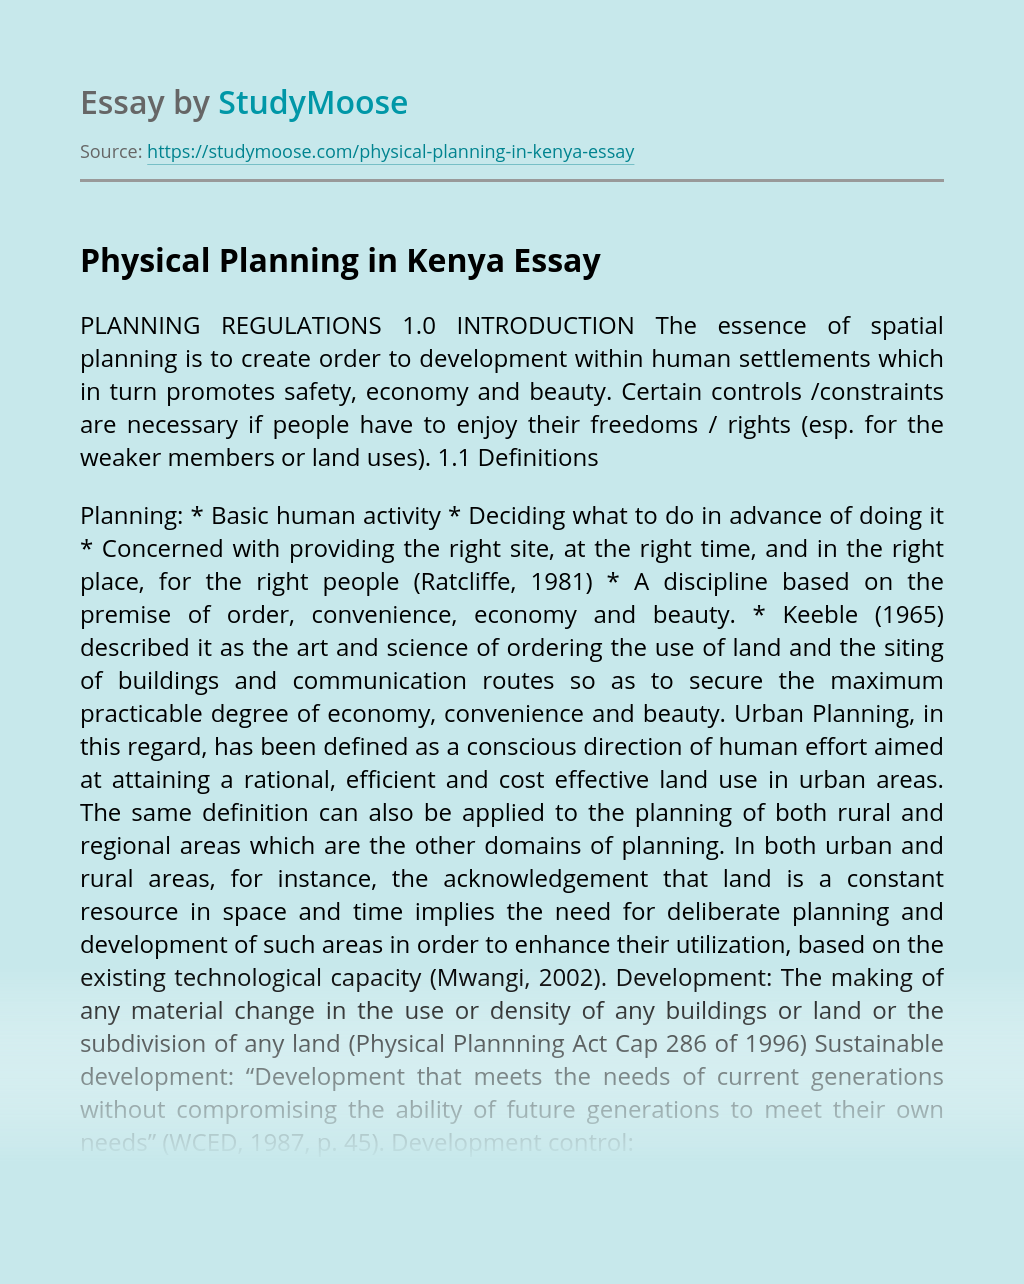 Physical Planning in Kenya